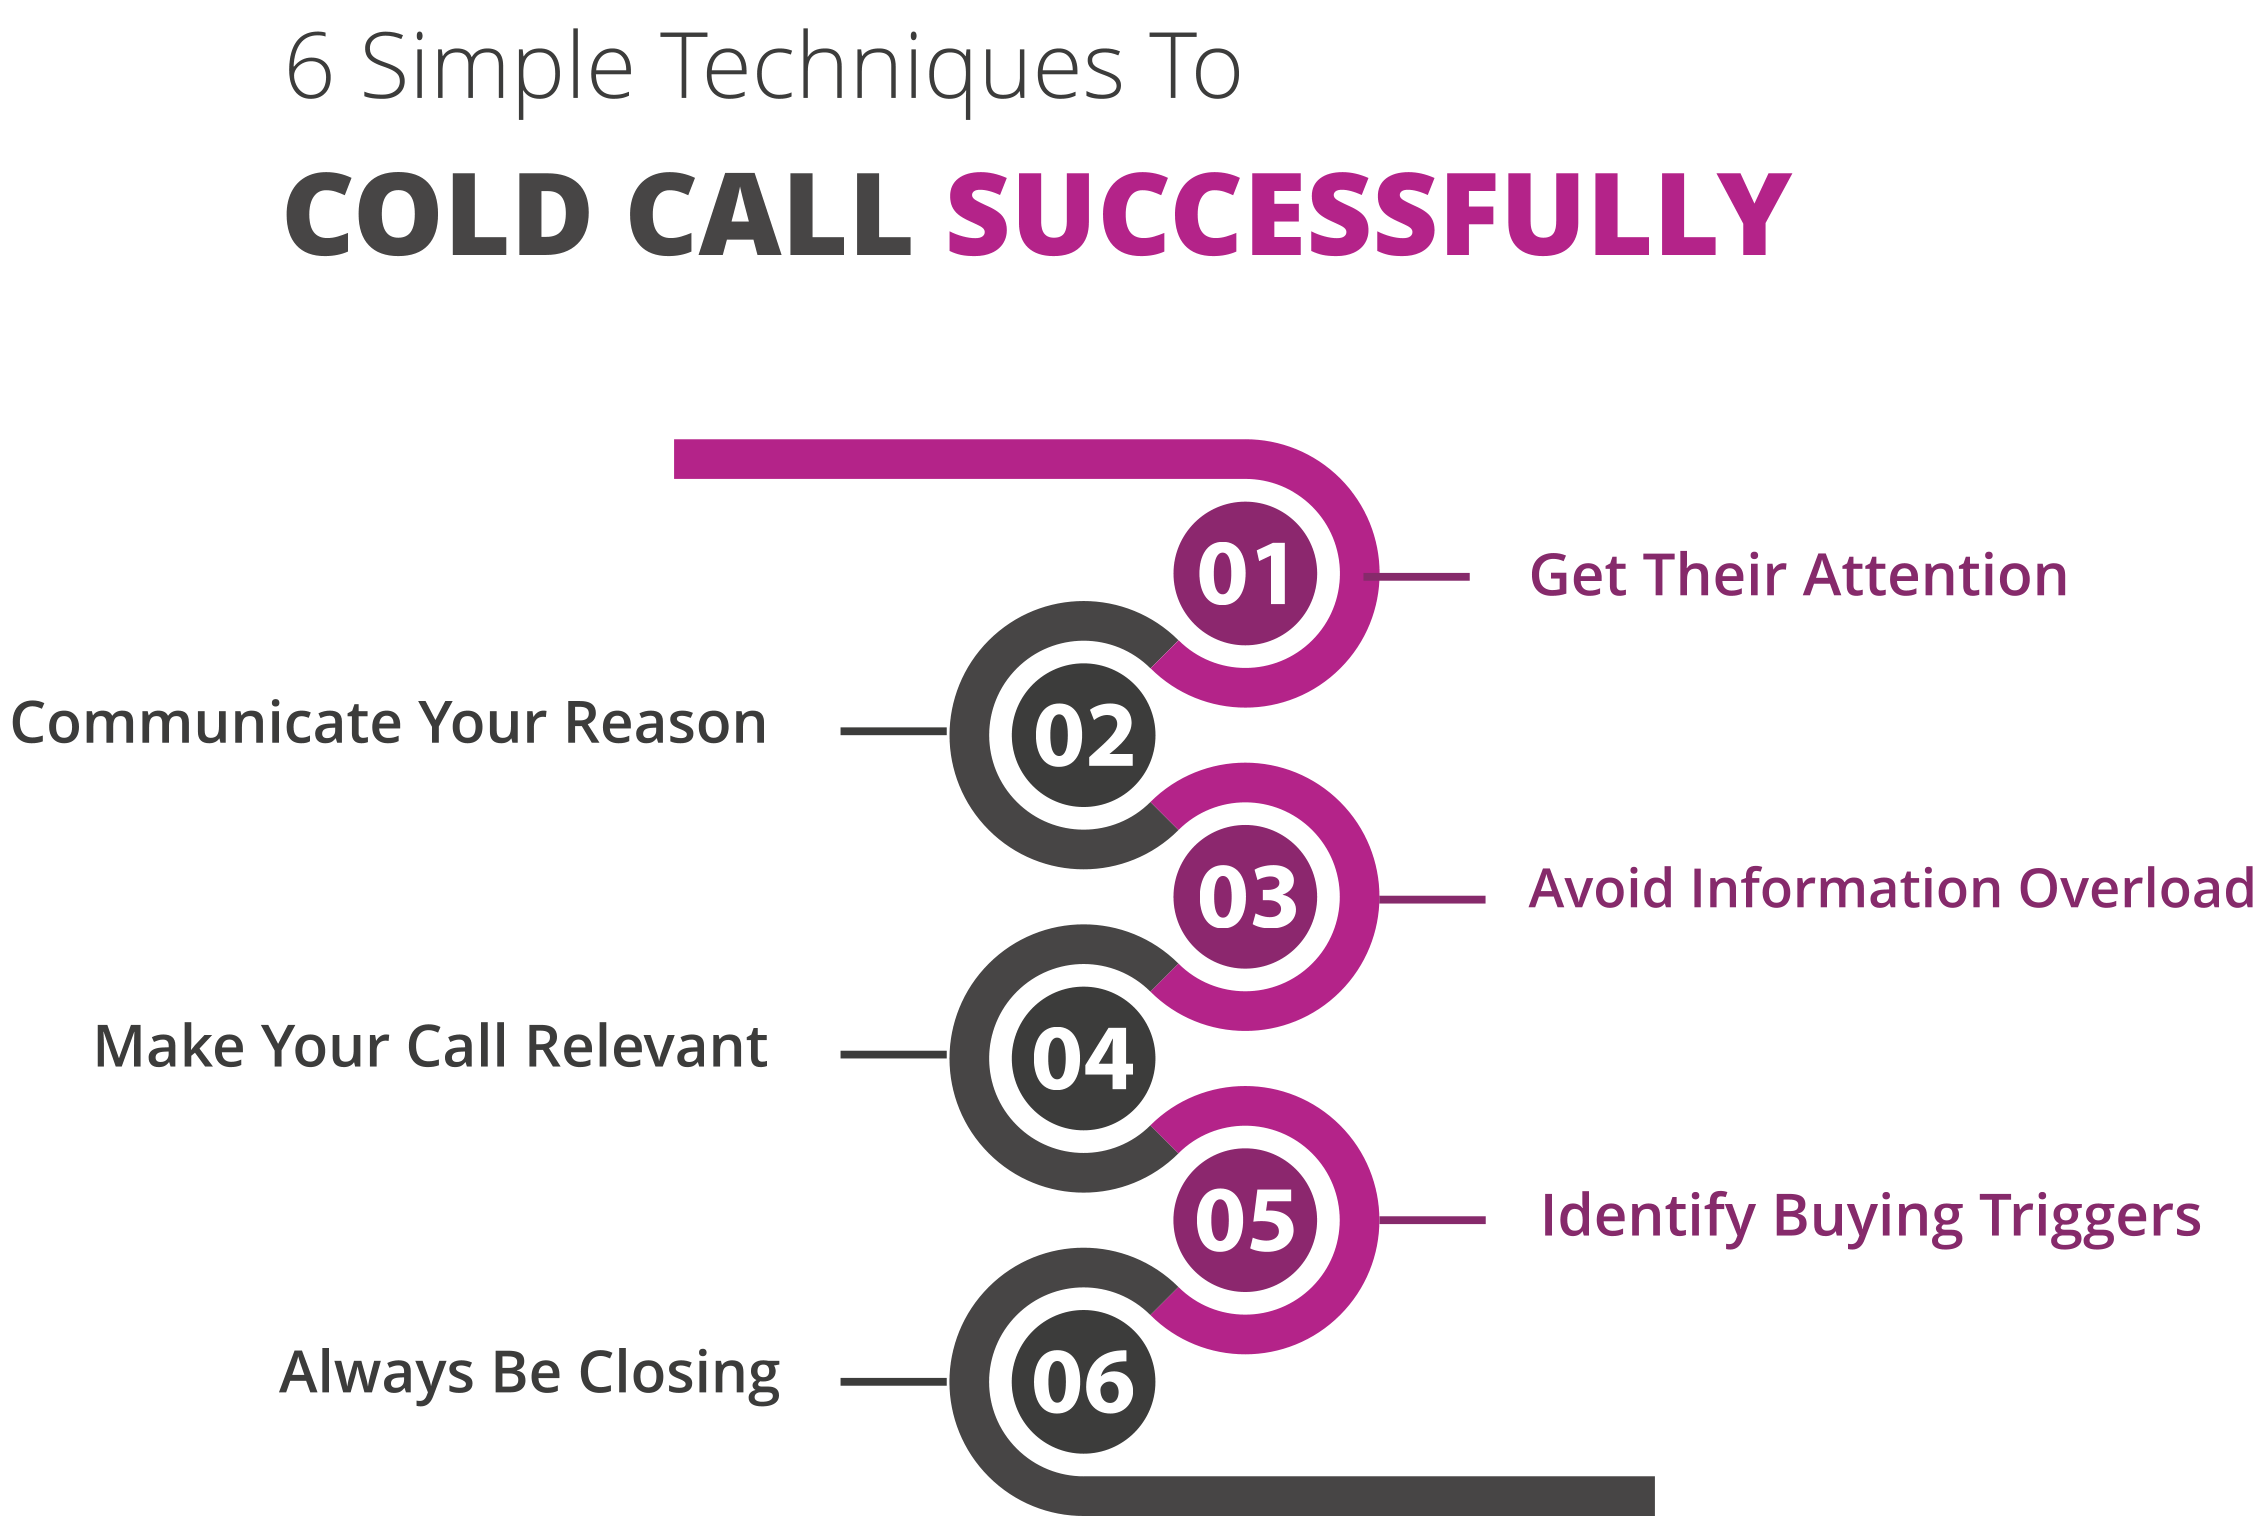 How To Cold Call for Sales 6 Cold Calling Techniques